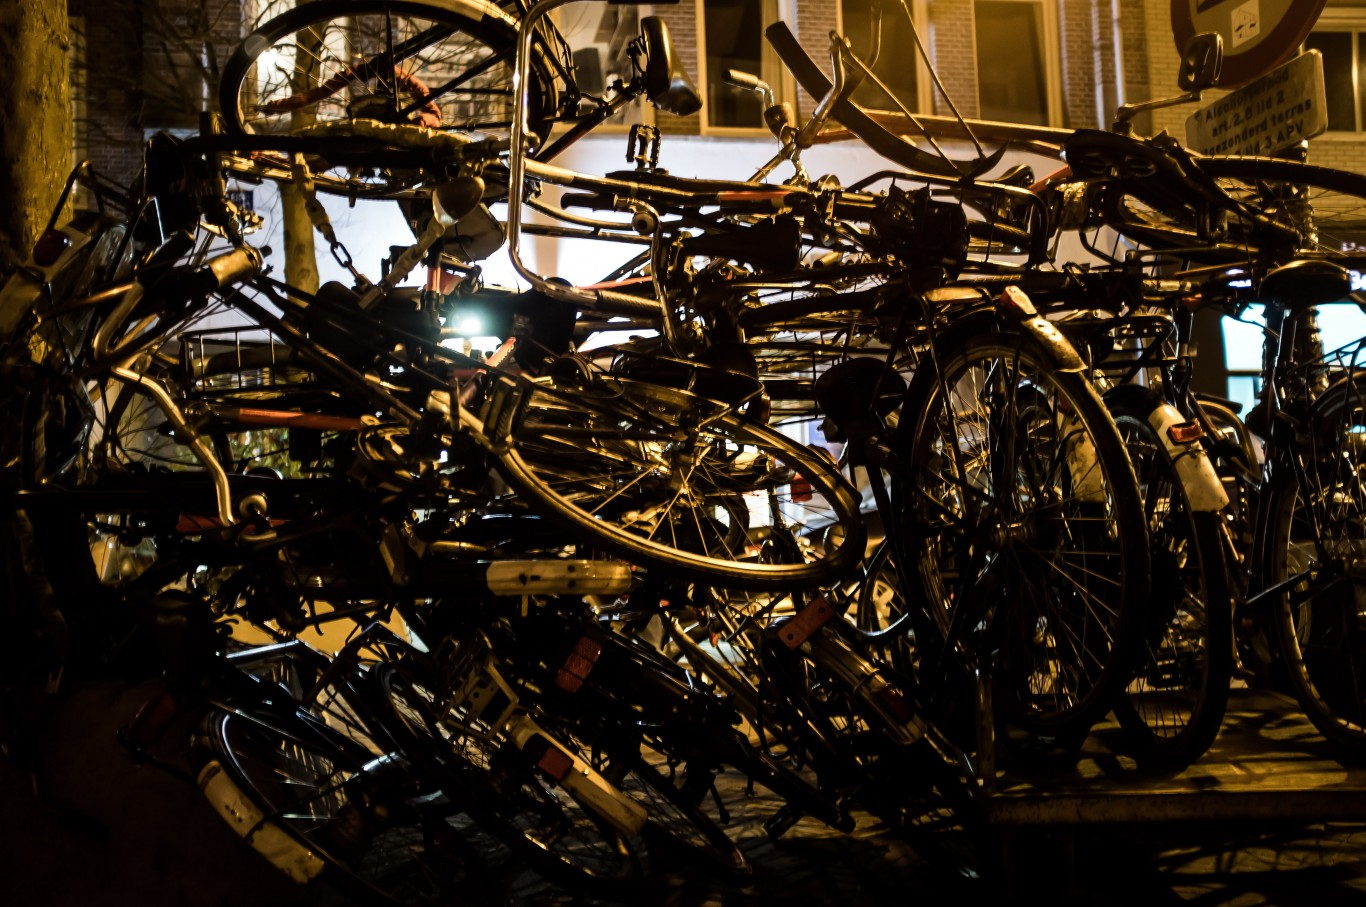 Bike Art or Bike Trash?